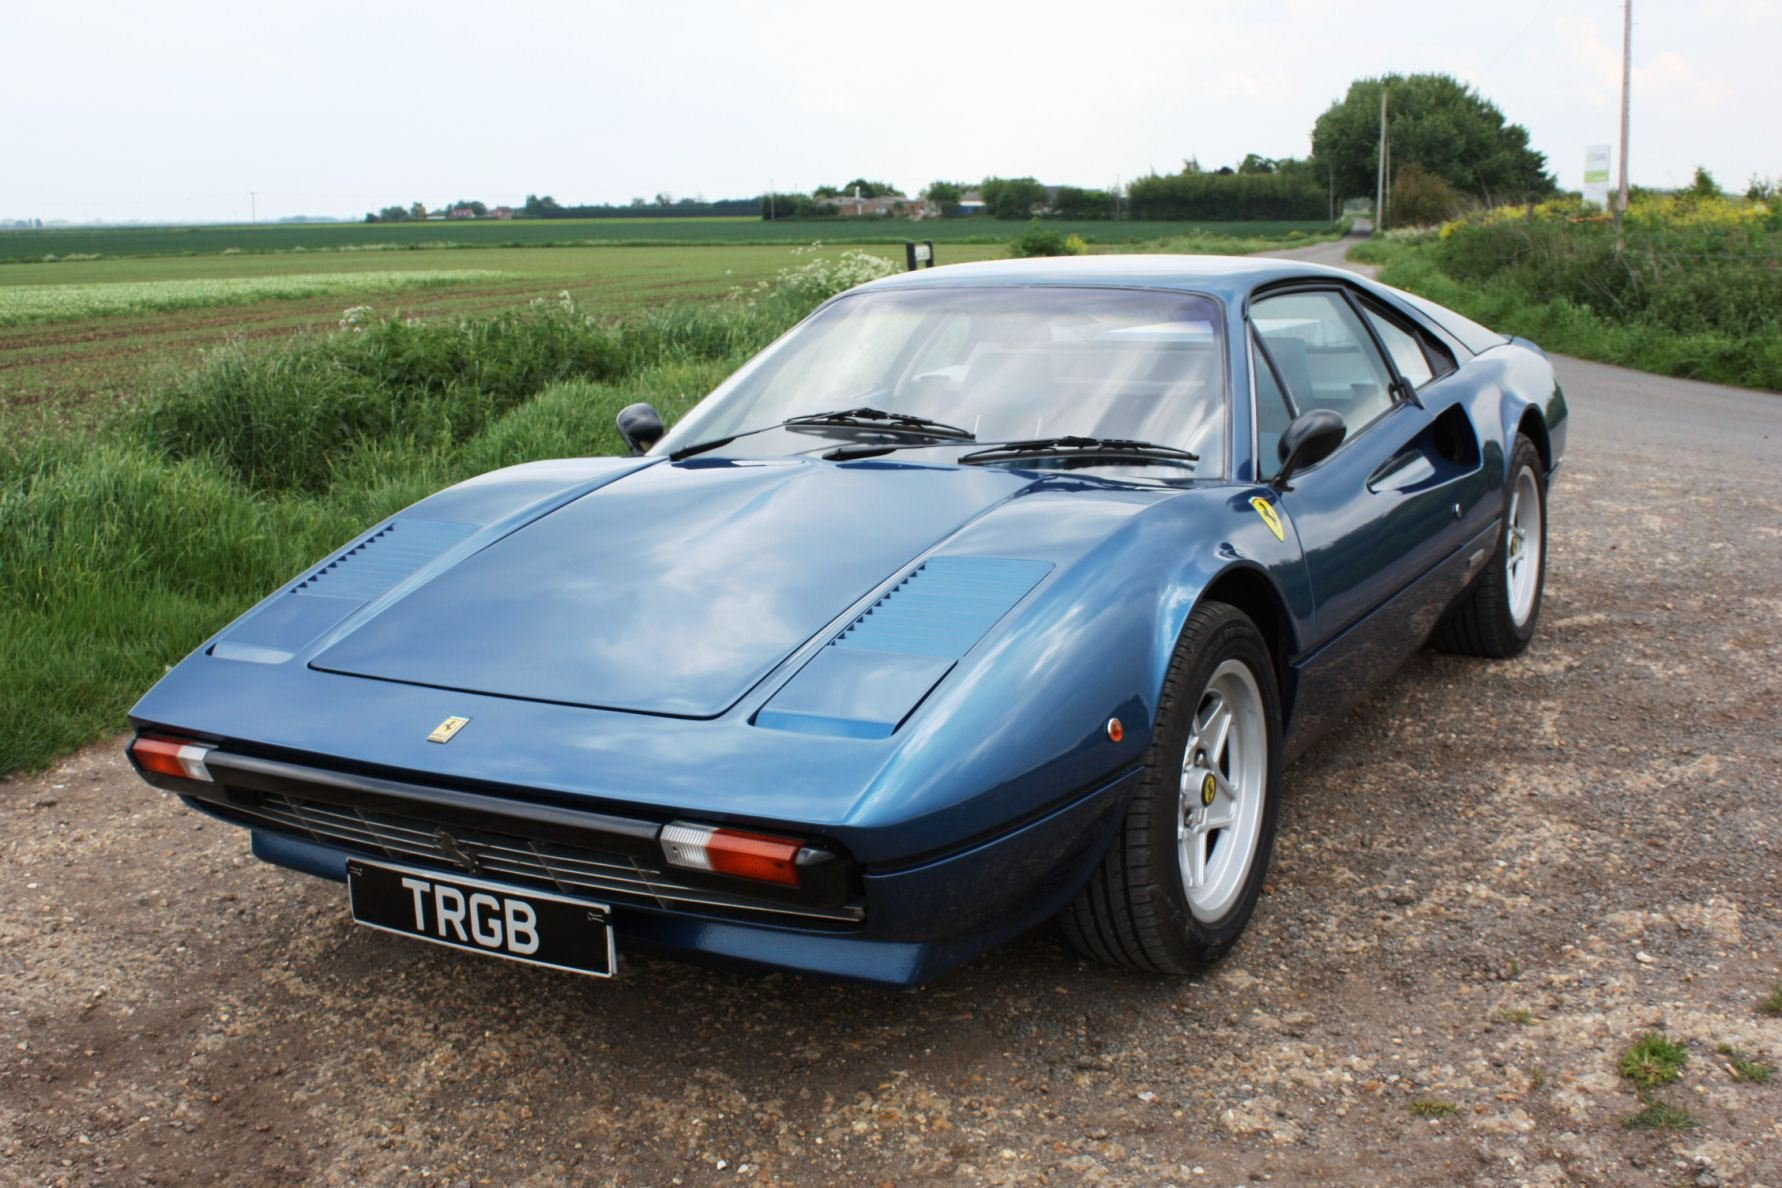 FERRARI 308 GTBi 1981. EXCELLENT CONDITION THROUGHOUT For Sale (picture 1 of 6)